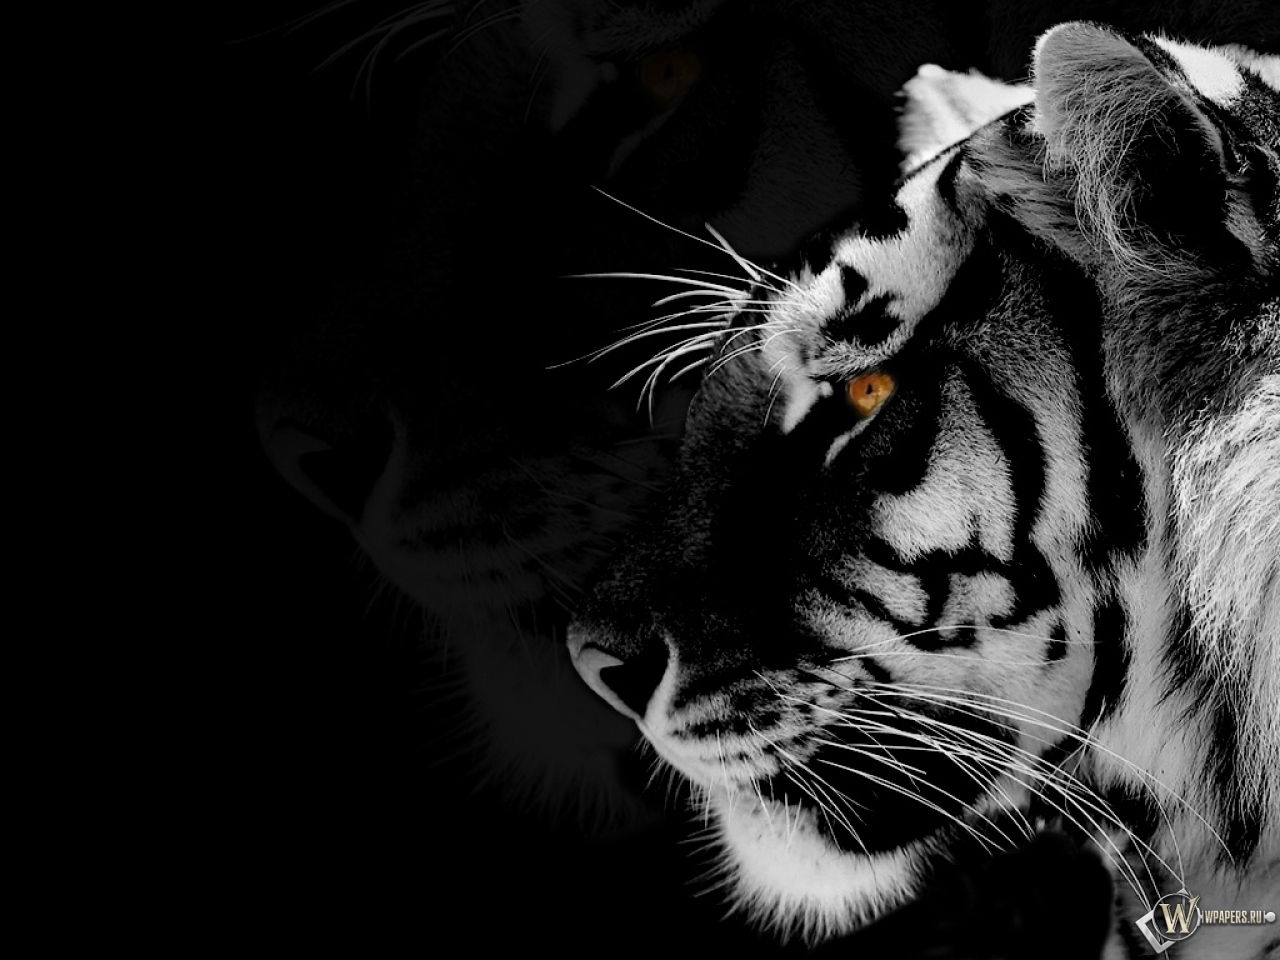 Black and white animal wallpaper wallpapersafari - White and black wallpaper ...